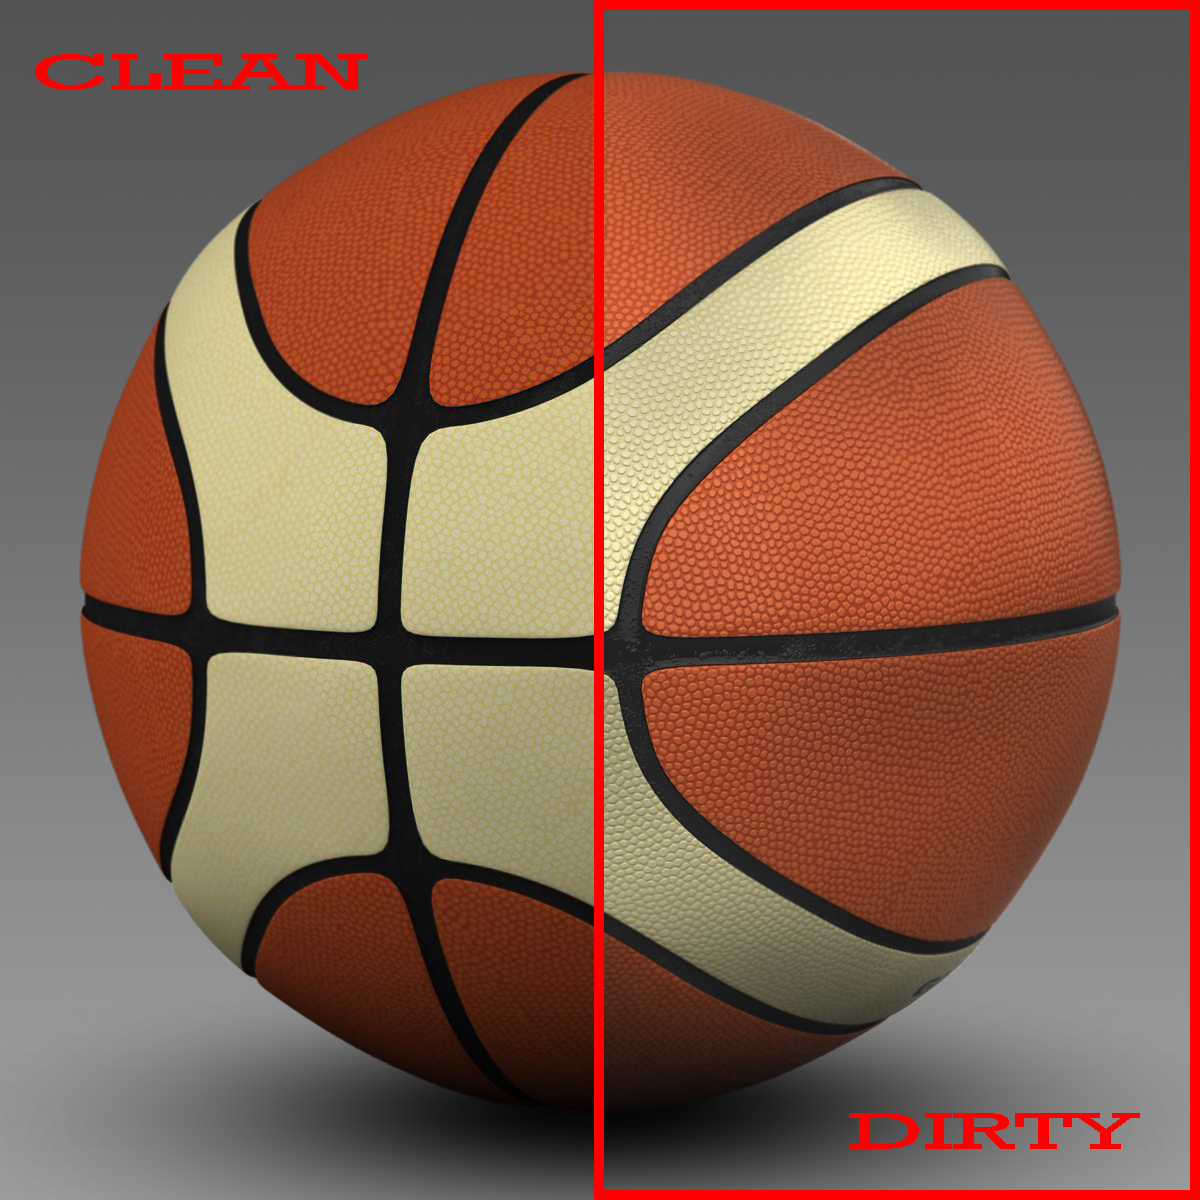 topin e basketbollit eba 3d model 3ds max fbx c4d ma mb obj 165277